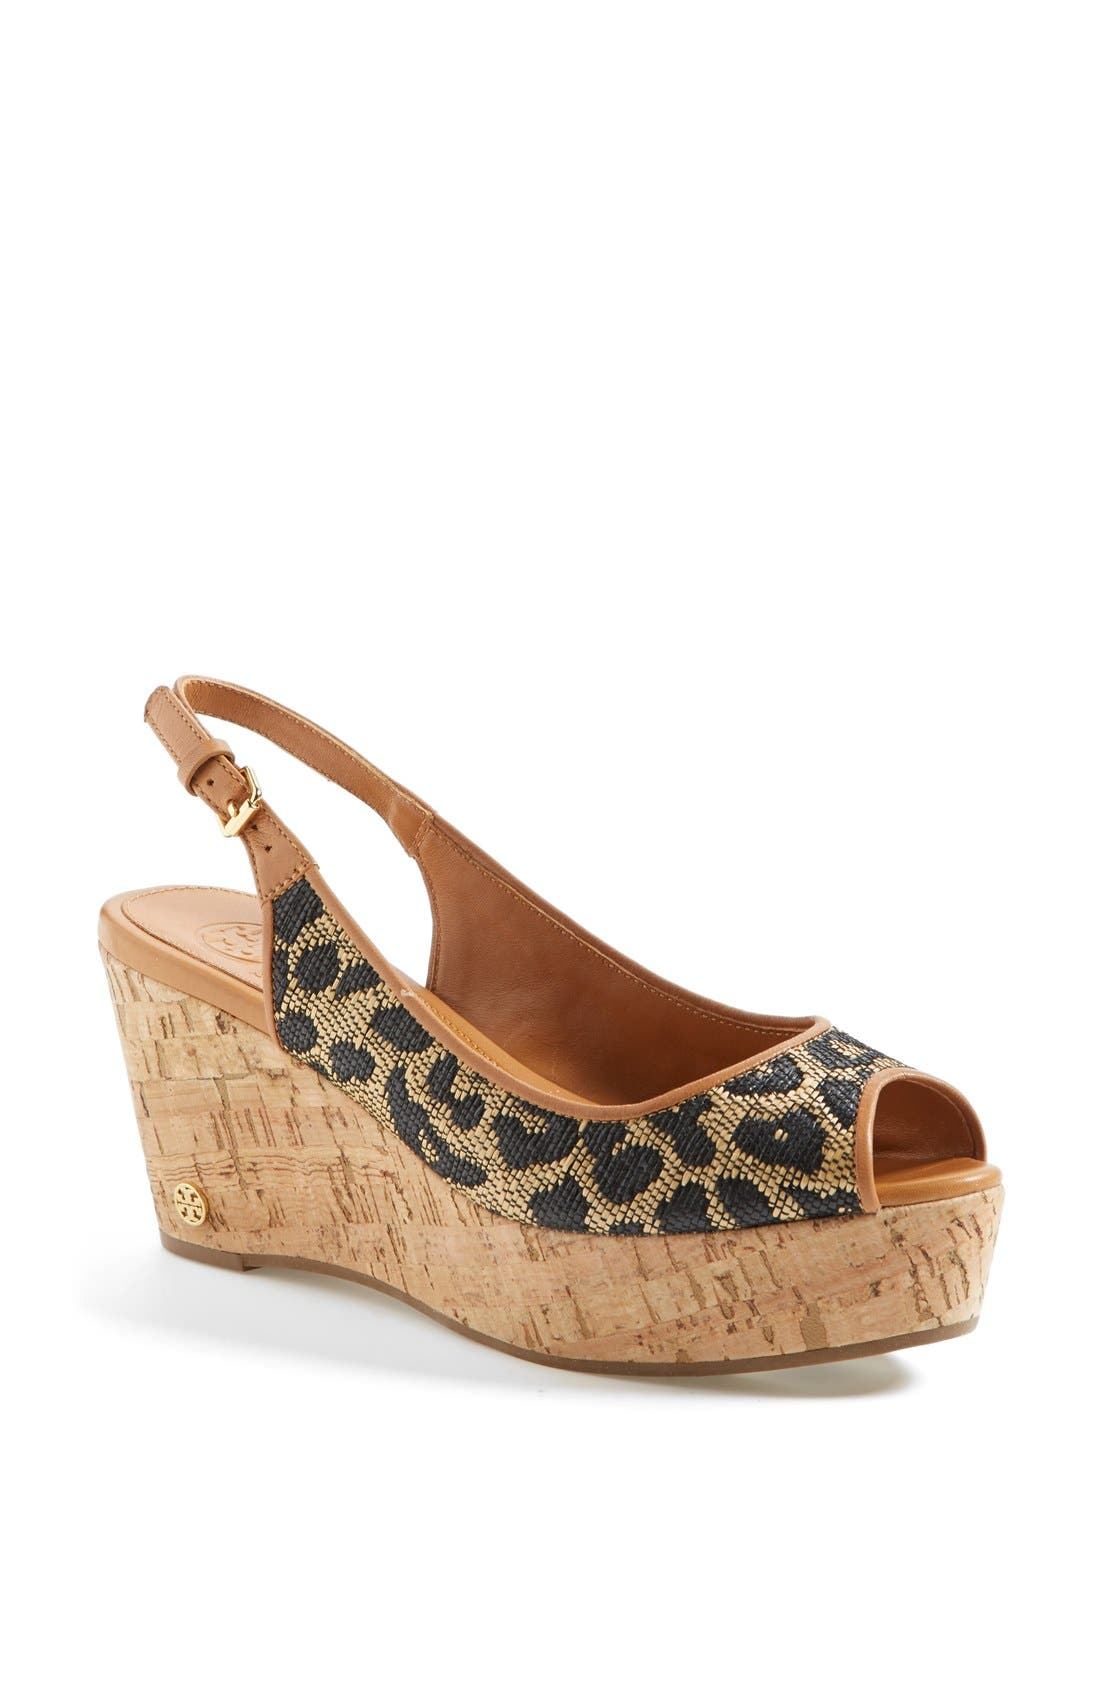 Alternate Image 1 Selected - Tory Burch 'Rosalind' Wedge Sandal (Online Only)